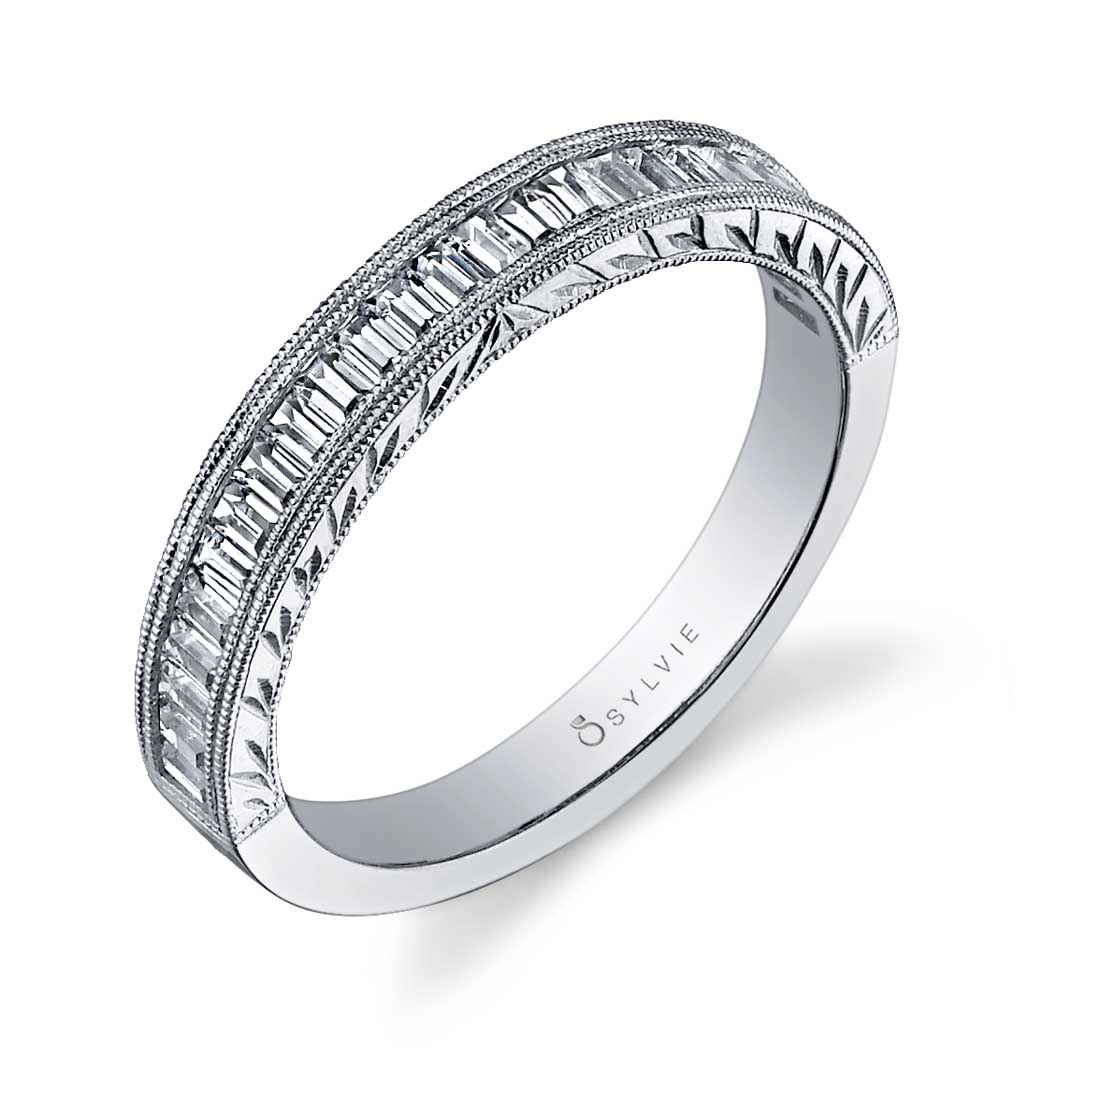 Hand Engraved Solitaire Engagement Ring